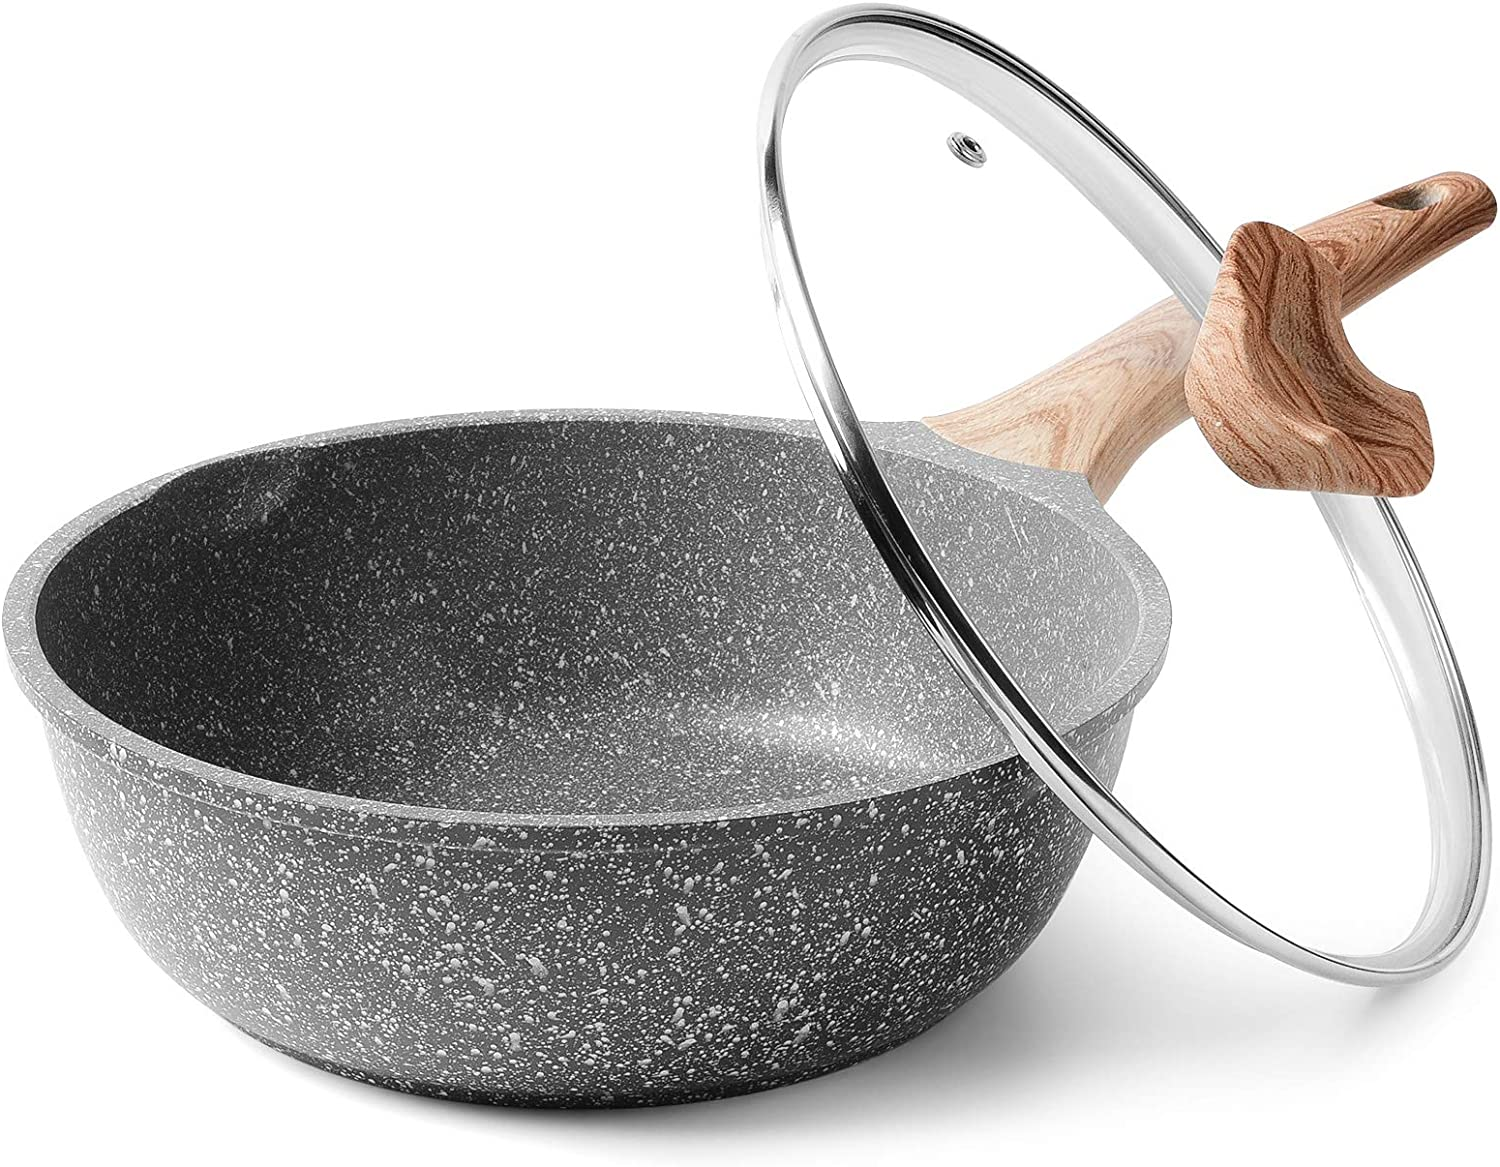 Caannasweis Nonstick Pan, Nonstick Deep Frying Pan, Nonstick Stone Saute Pan with Lid, Griddle Pan Soft Touch Handle, Induction Compatible(9.5 inch)